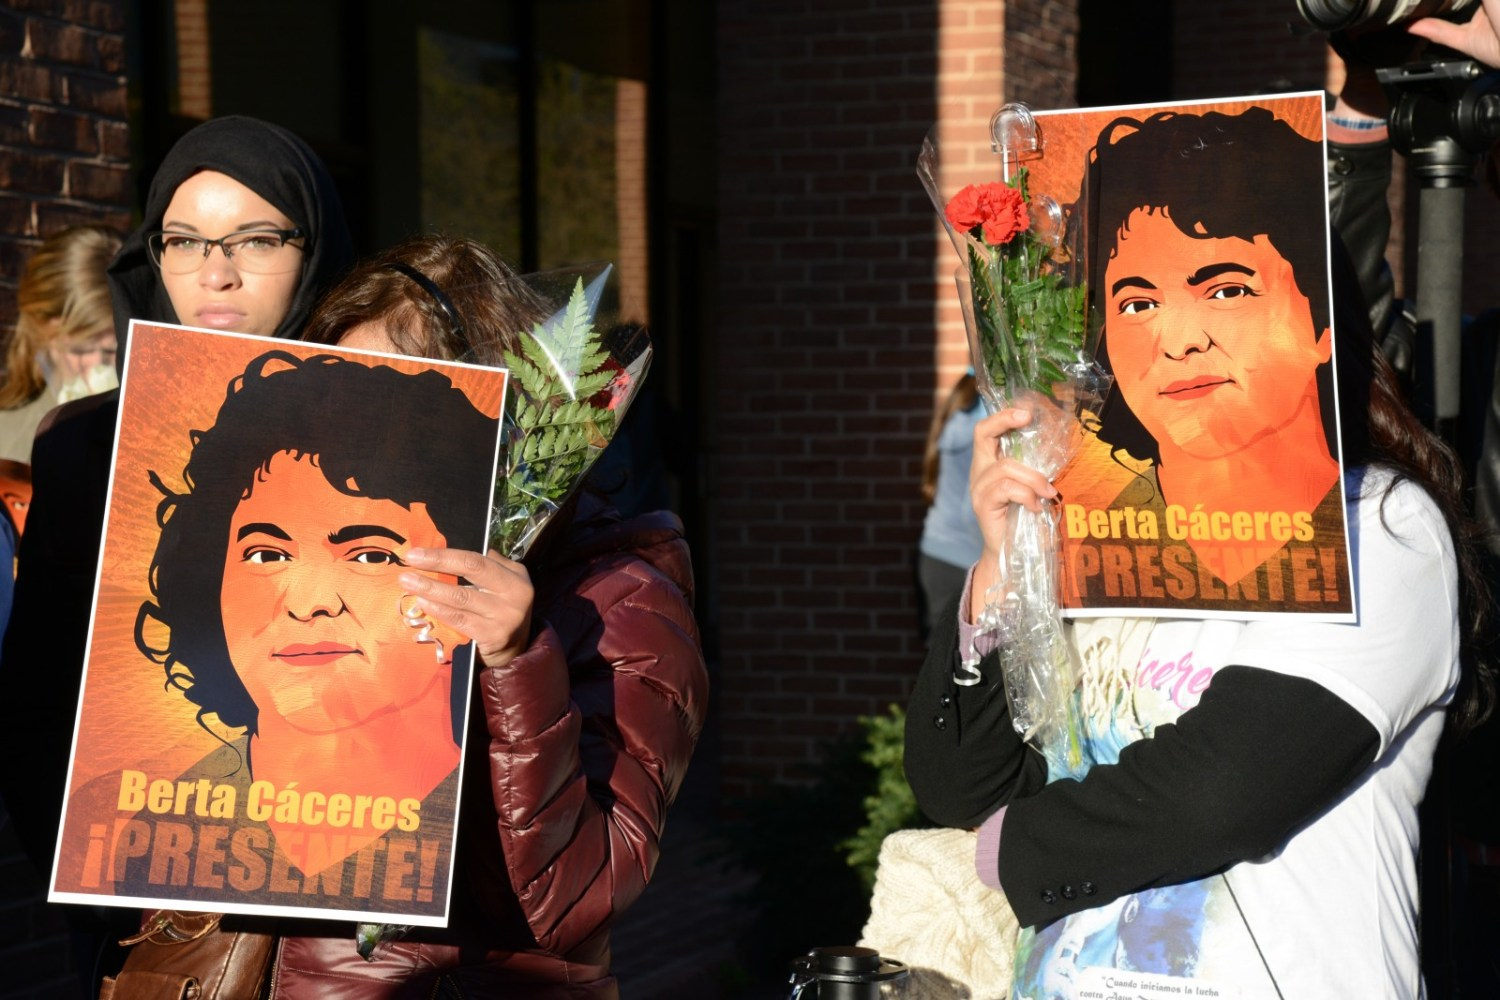 Mourners hold a vigil outside the Organization of American States for Berta Cáceres, who was murdered in Honduras on March 3. Cáceres was a leading environmental activist who had opposed the Agua Zarca dam. Photo courtesy Daniel Cima / Comisión Interamericana de Derechos Humanos via Flickr Creative Commons